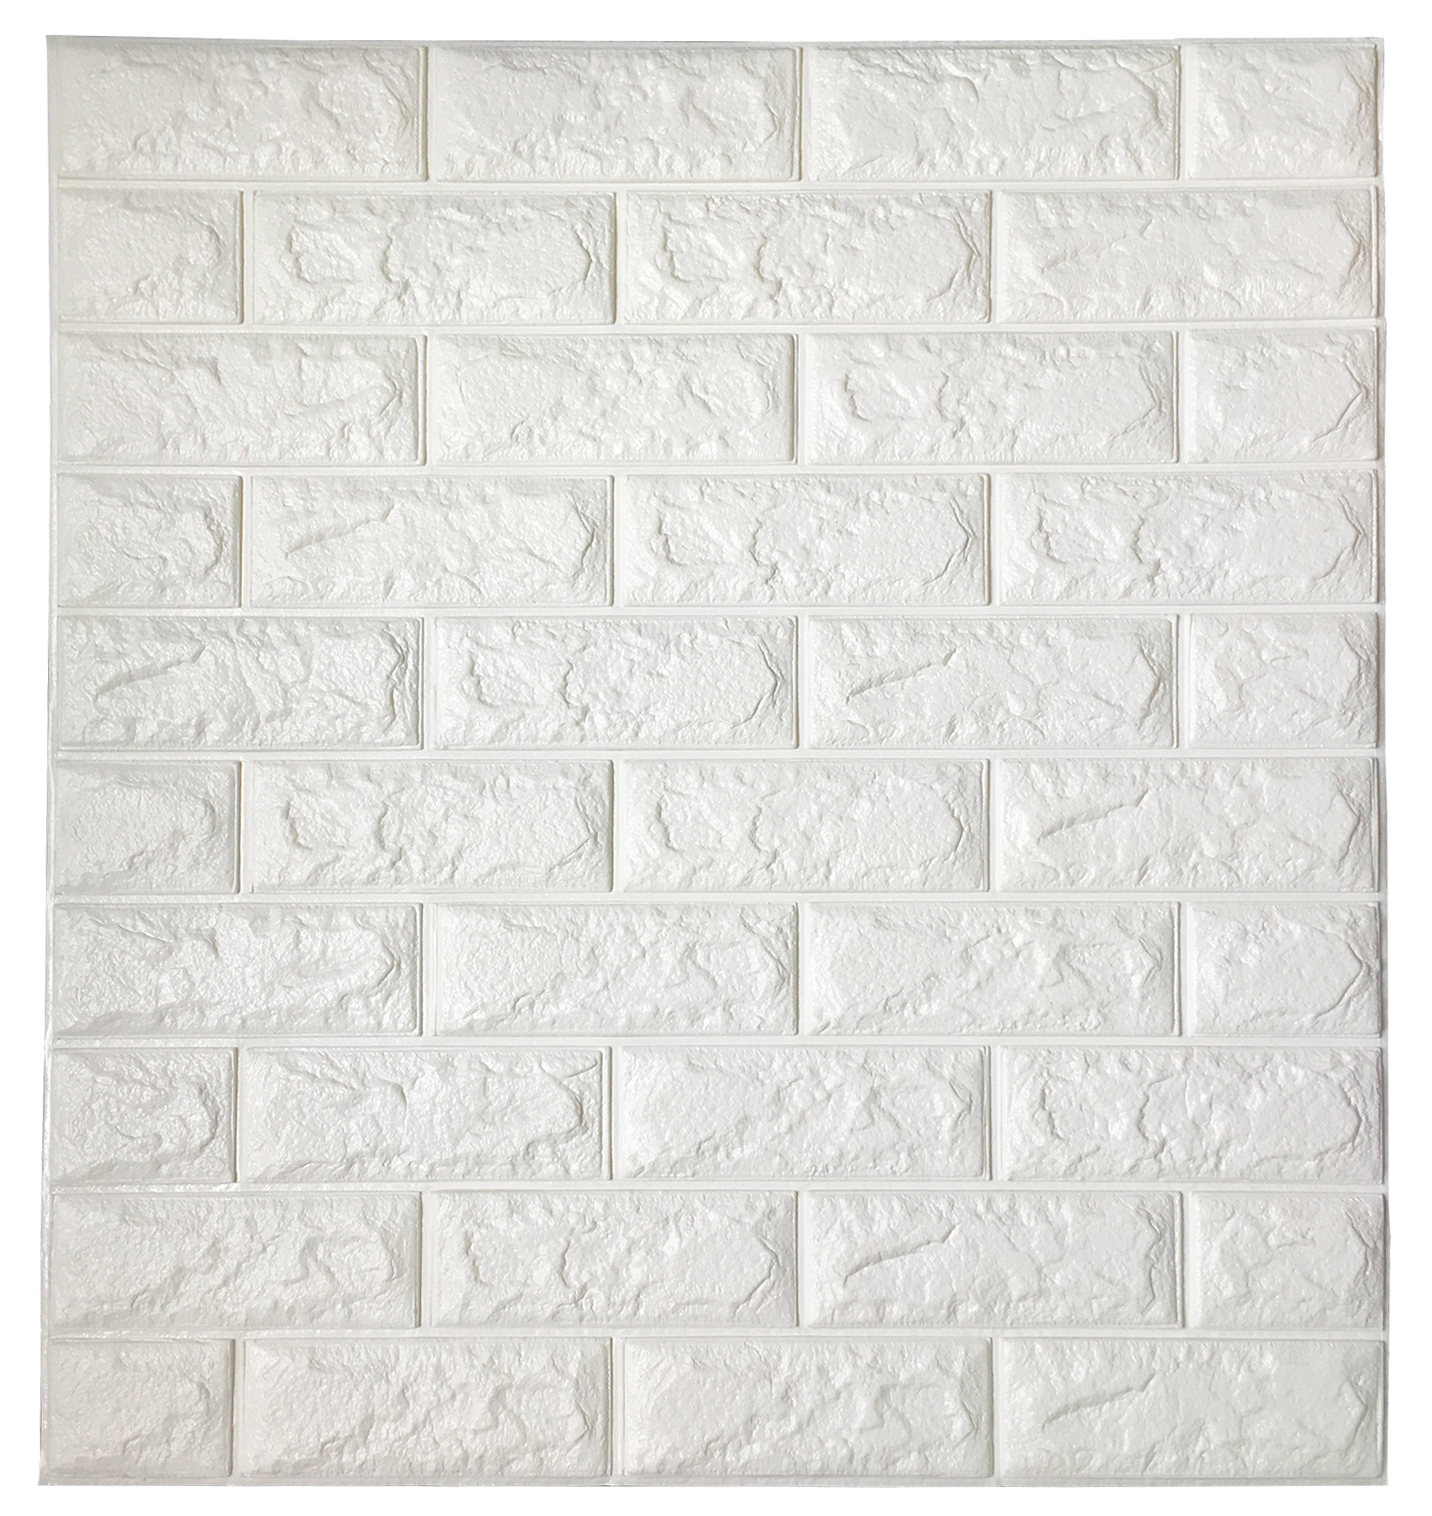 26 X 23 Peel And Stick 3D Wall Panels White Brick Wallpaper For TV